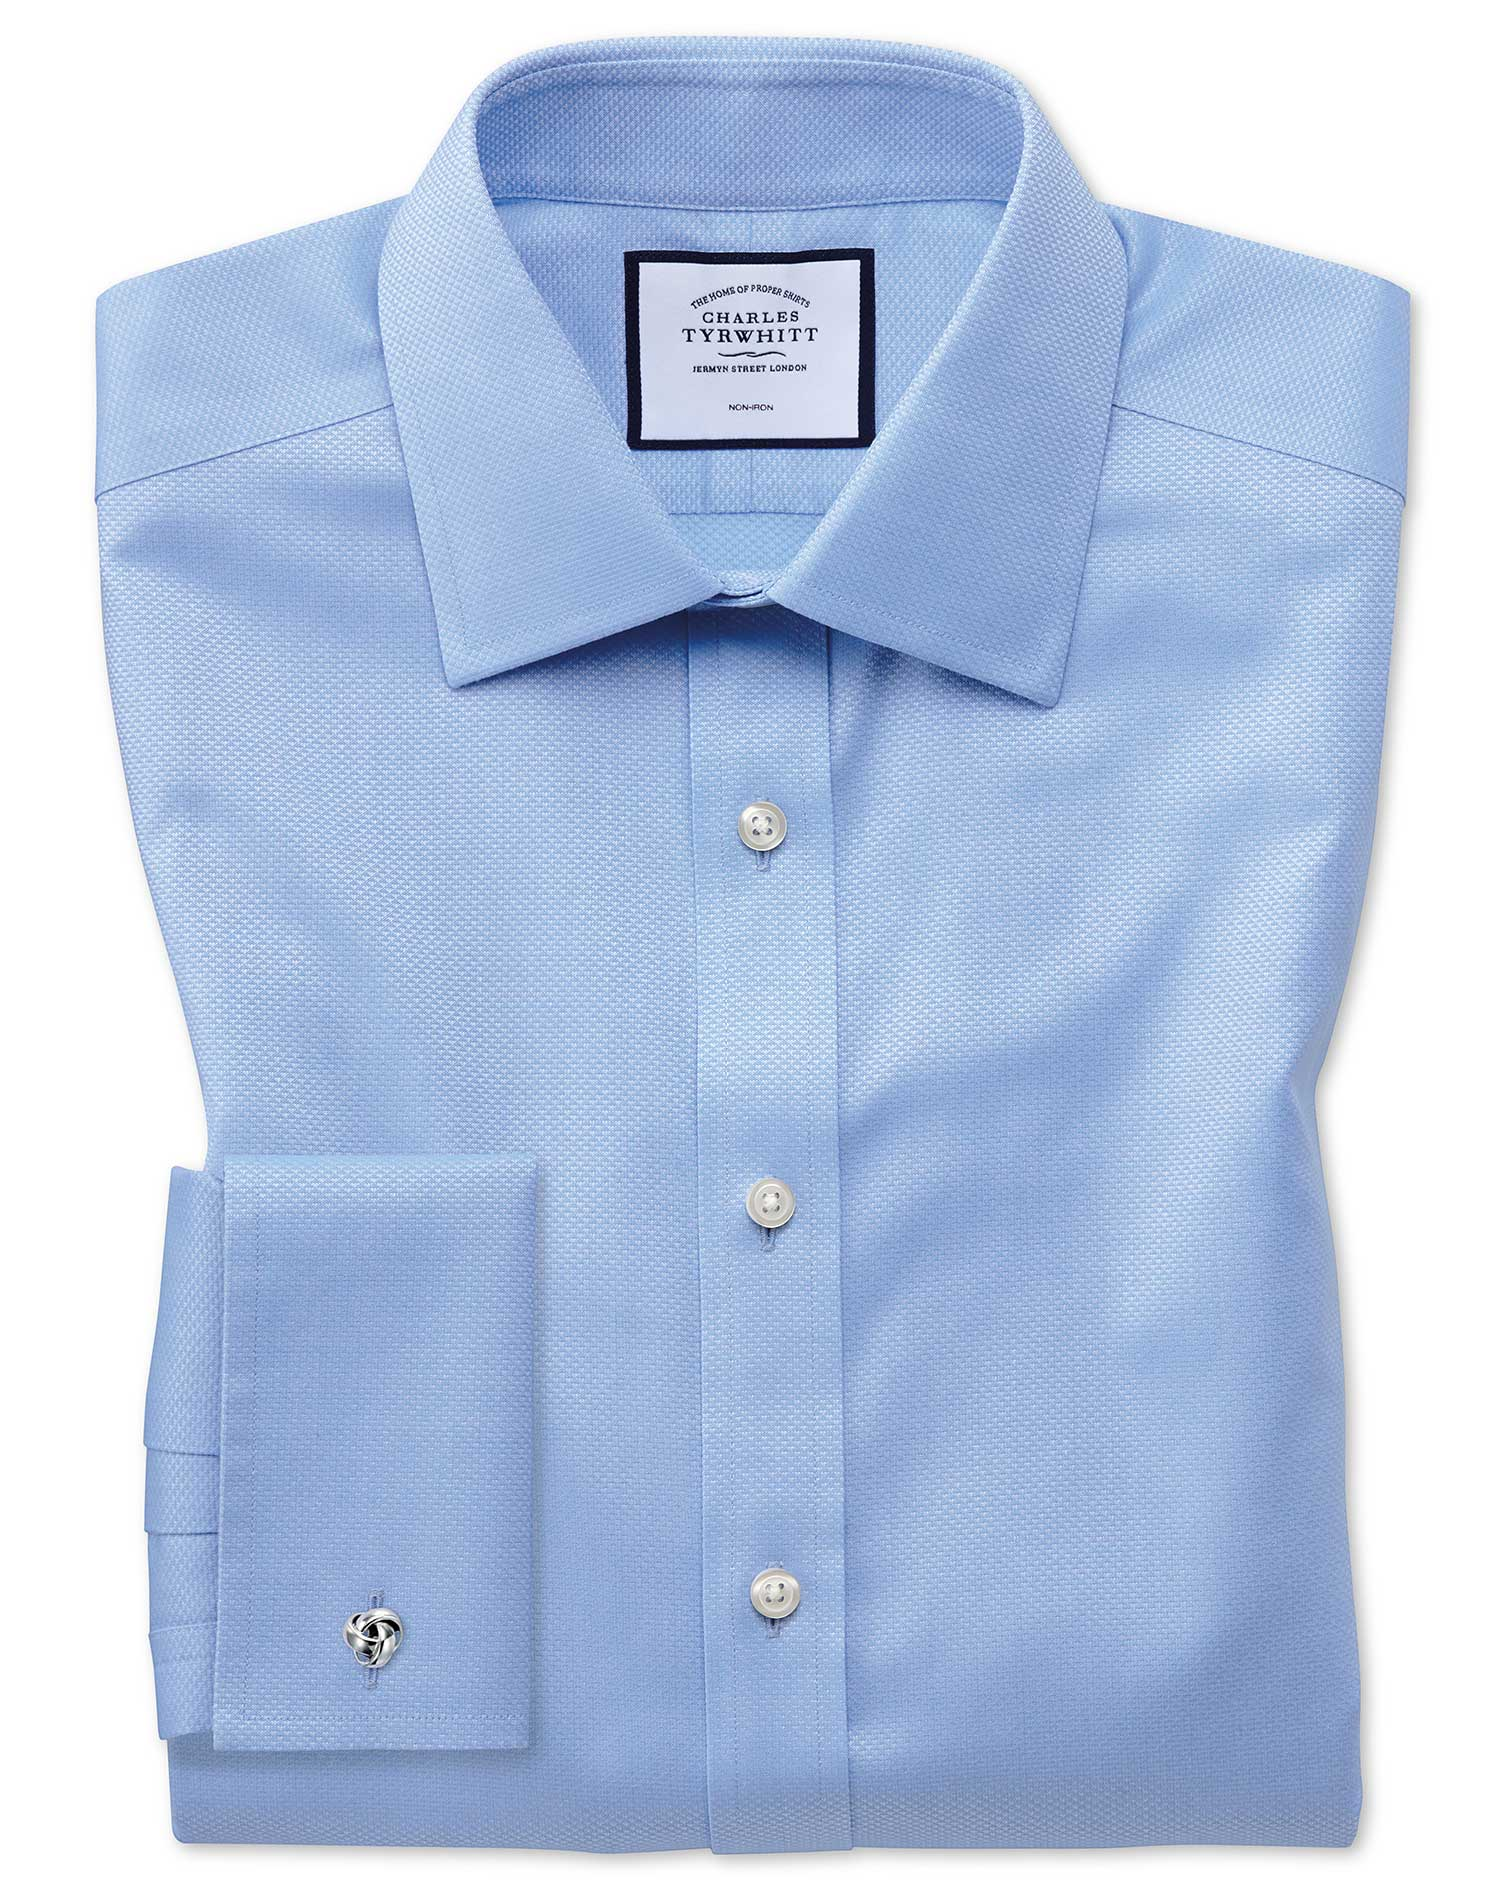 Slim Fit Non-Iron Sky Blue Triangle Weave Cotton Formal Shirt Single Cuff Size 15.5/35 by Charles Ty